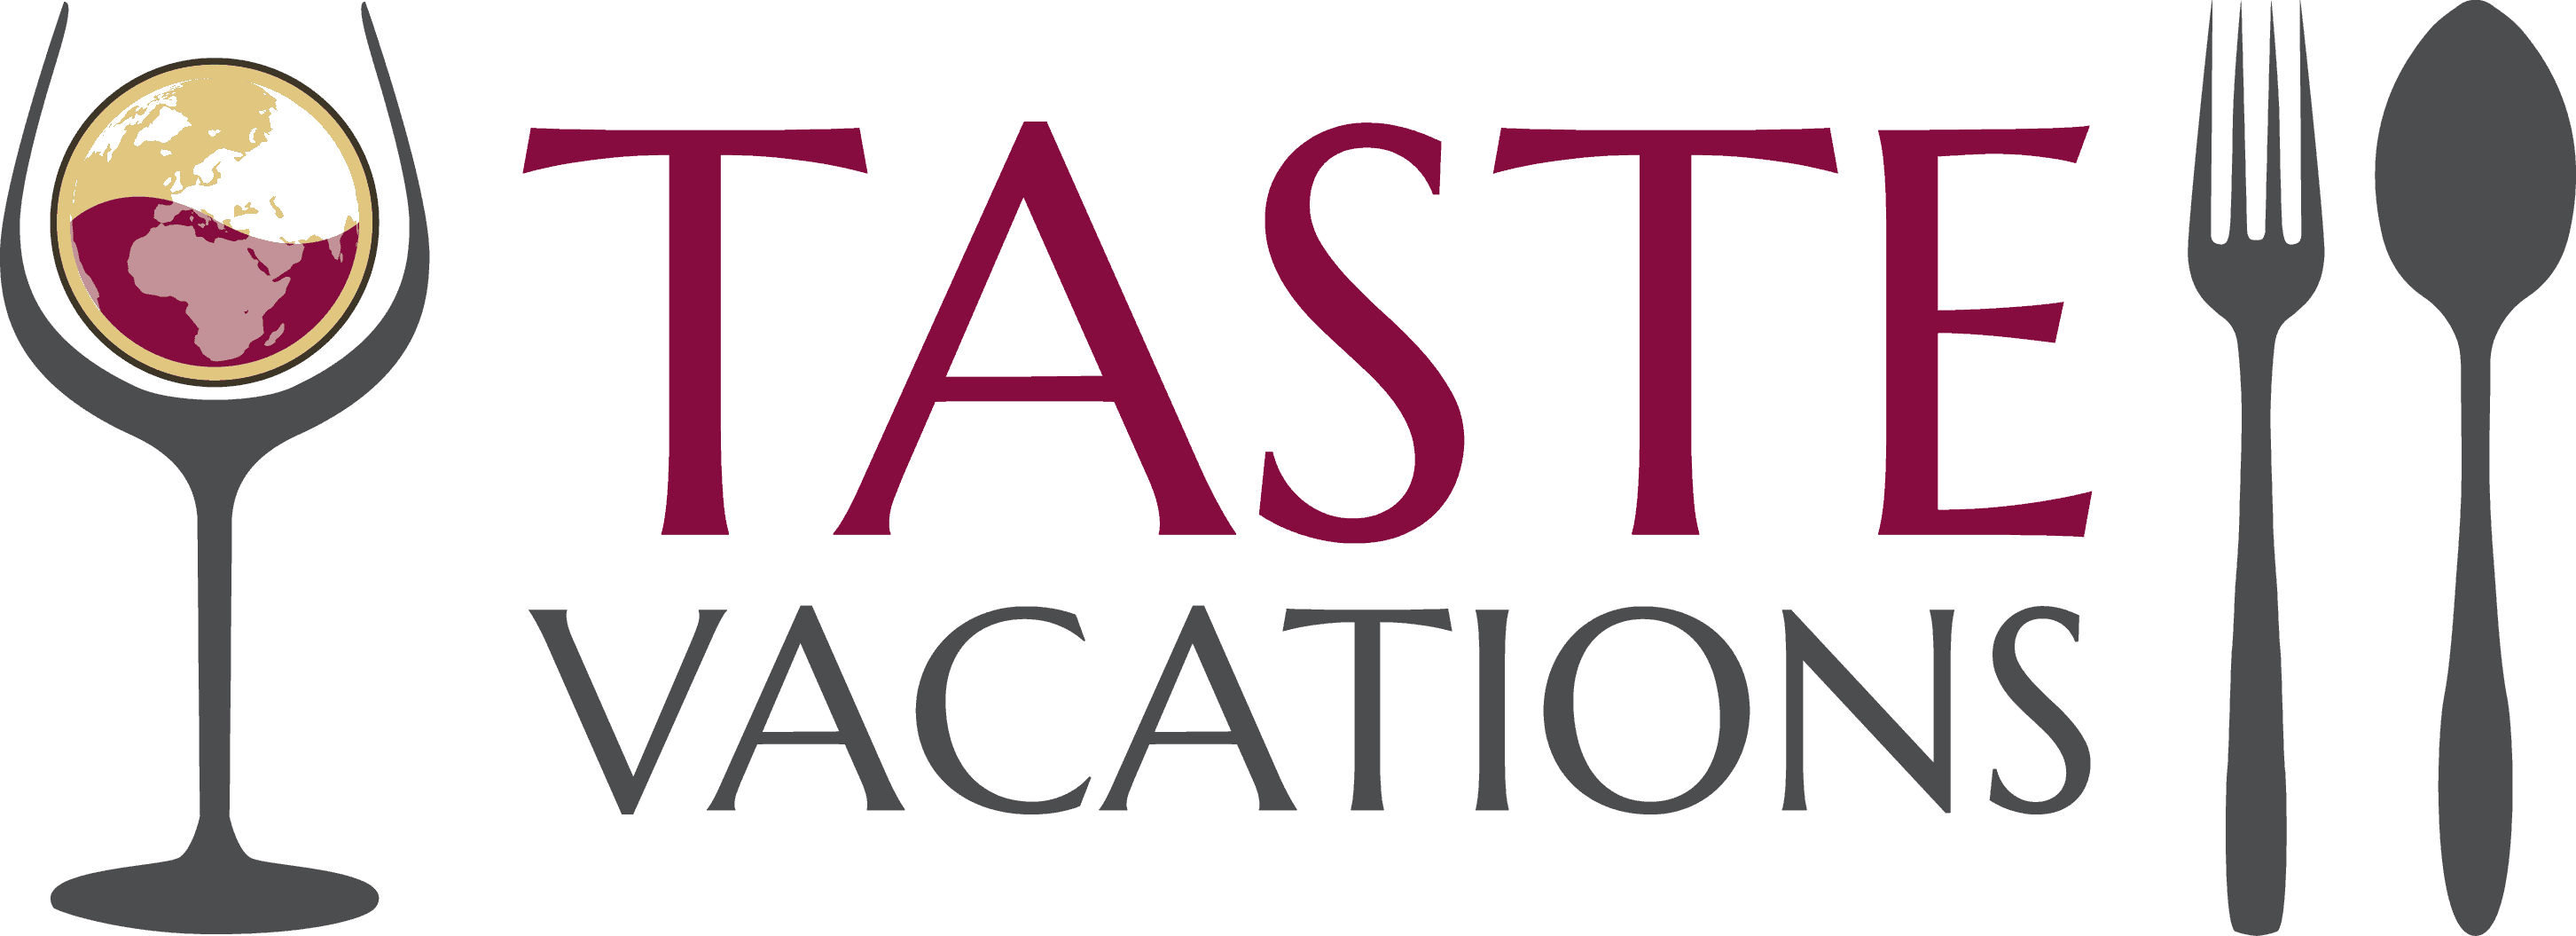 Welcome To Taste Vacations Luxury Food And Drink Tours